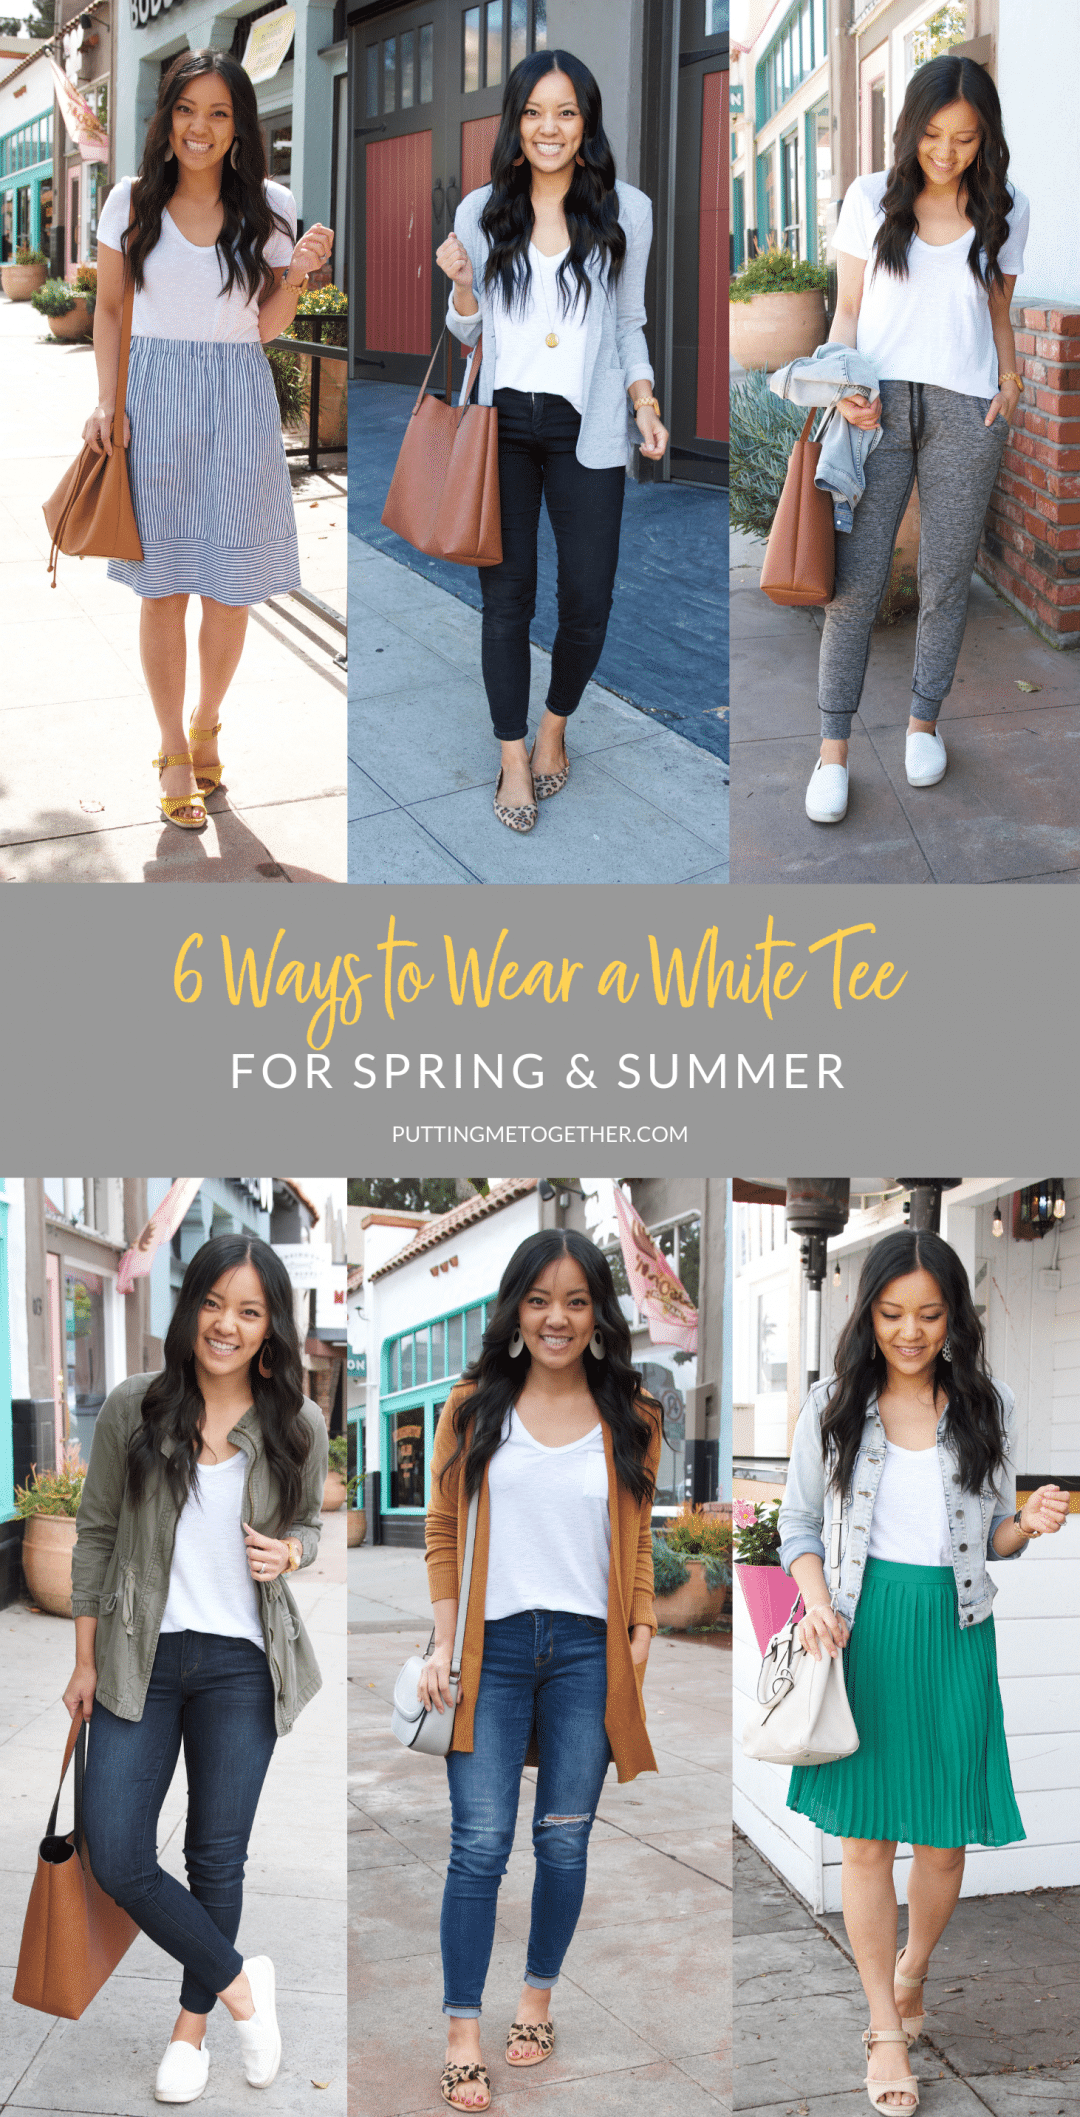 6 Ways to Wear a White Tee for Spring and Early Summer